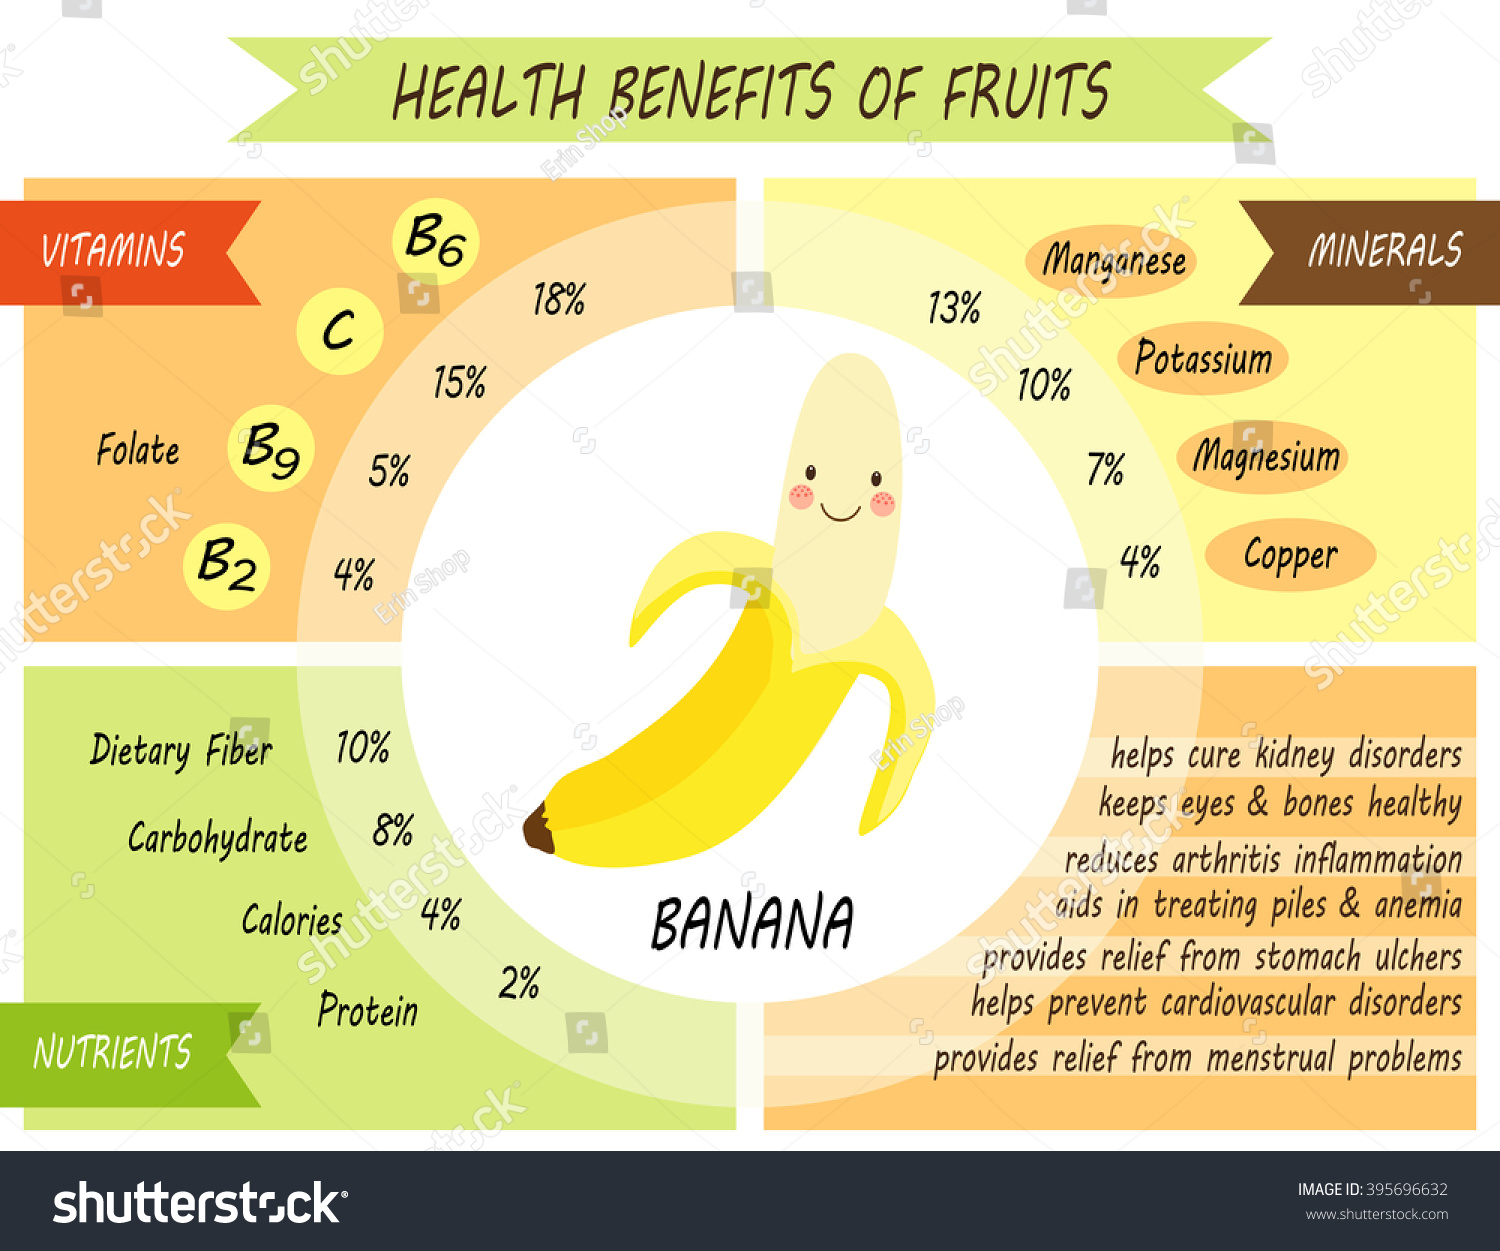 nutritional contents of banana nutrition ftempo. Black Bedroom Furniture Sets. Home Design Ideas